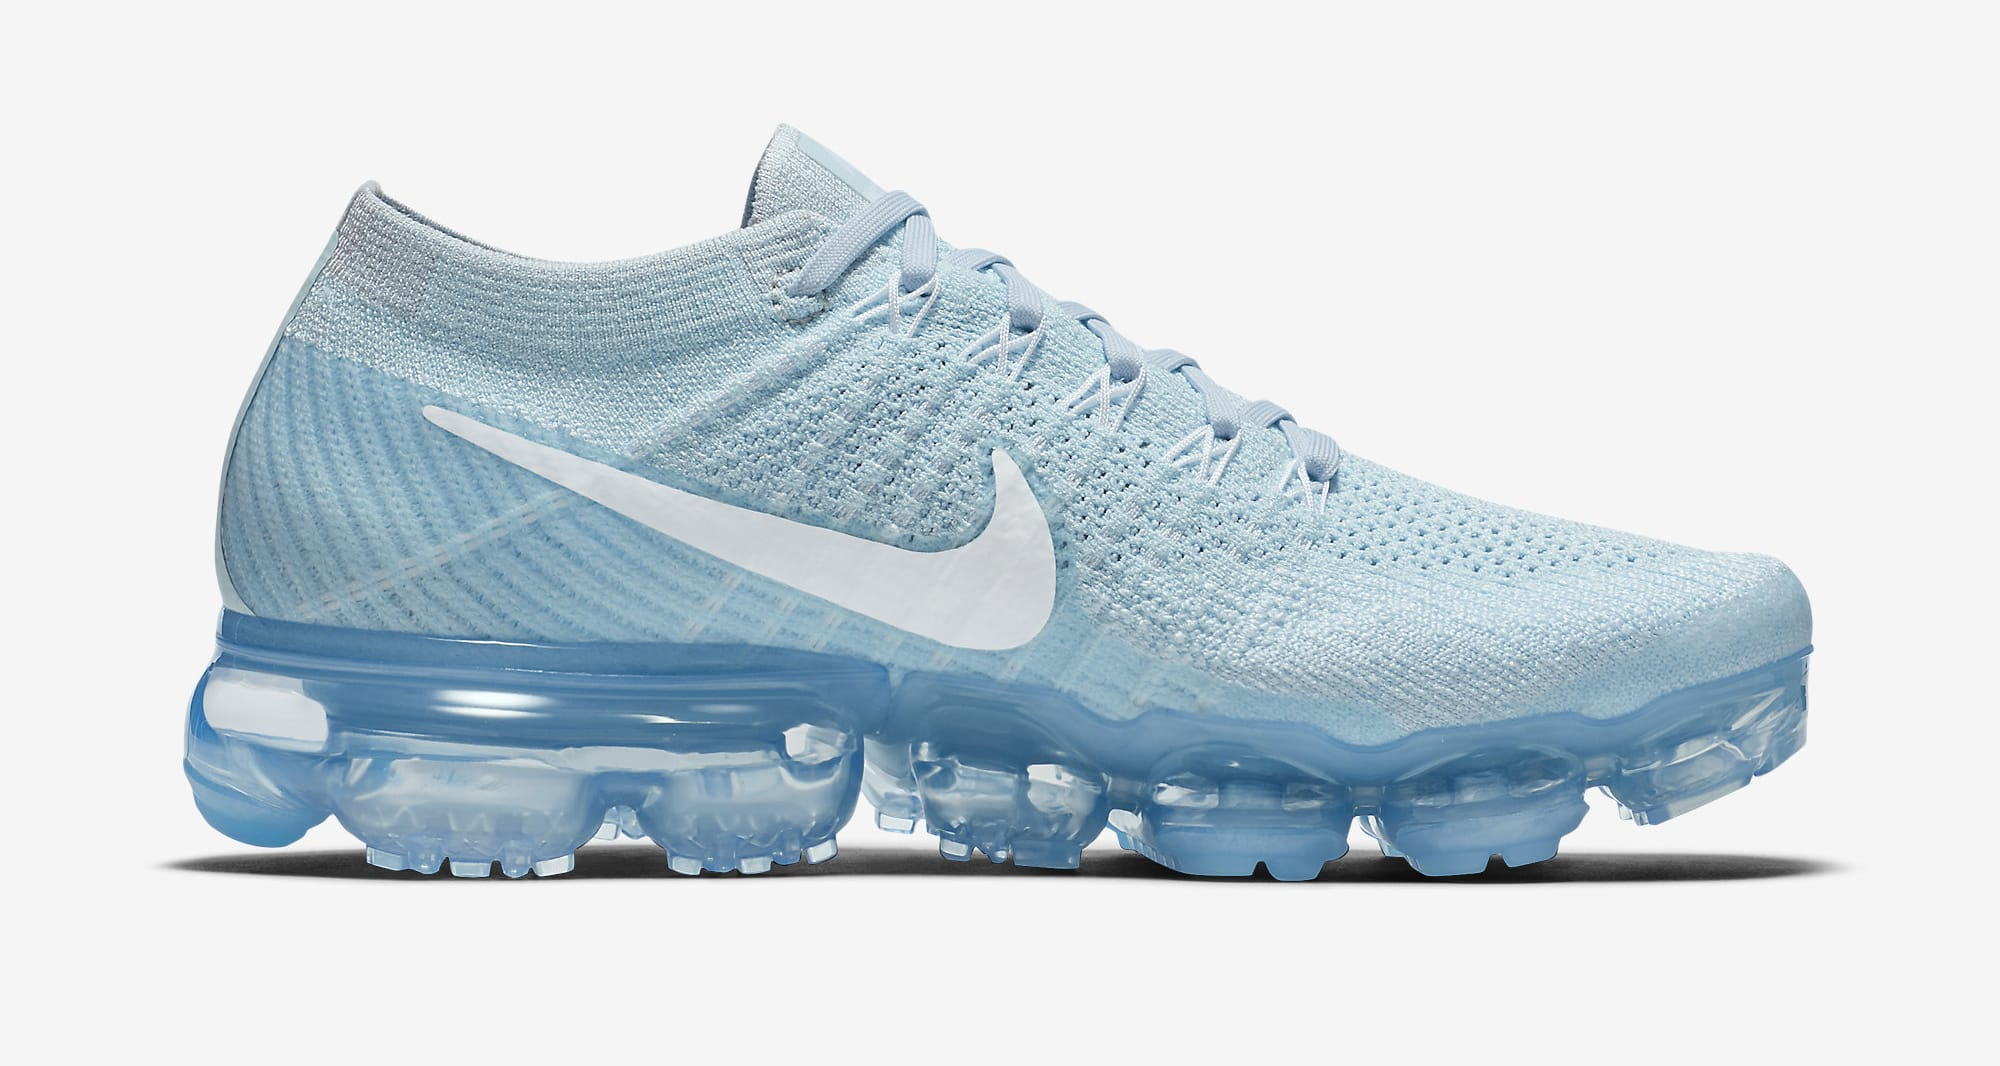 53454d9e04827 Buy Nike Cheap Air Vapormax Flyknit Running Shoes Sale Online 2018